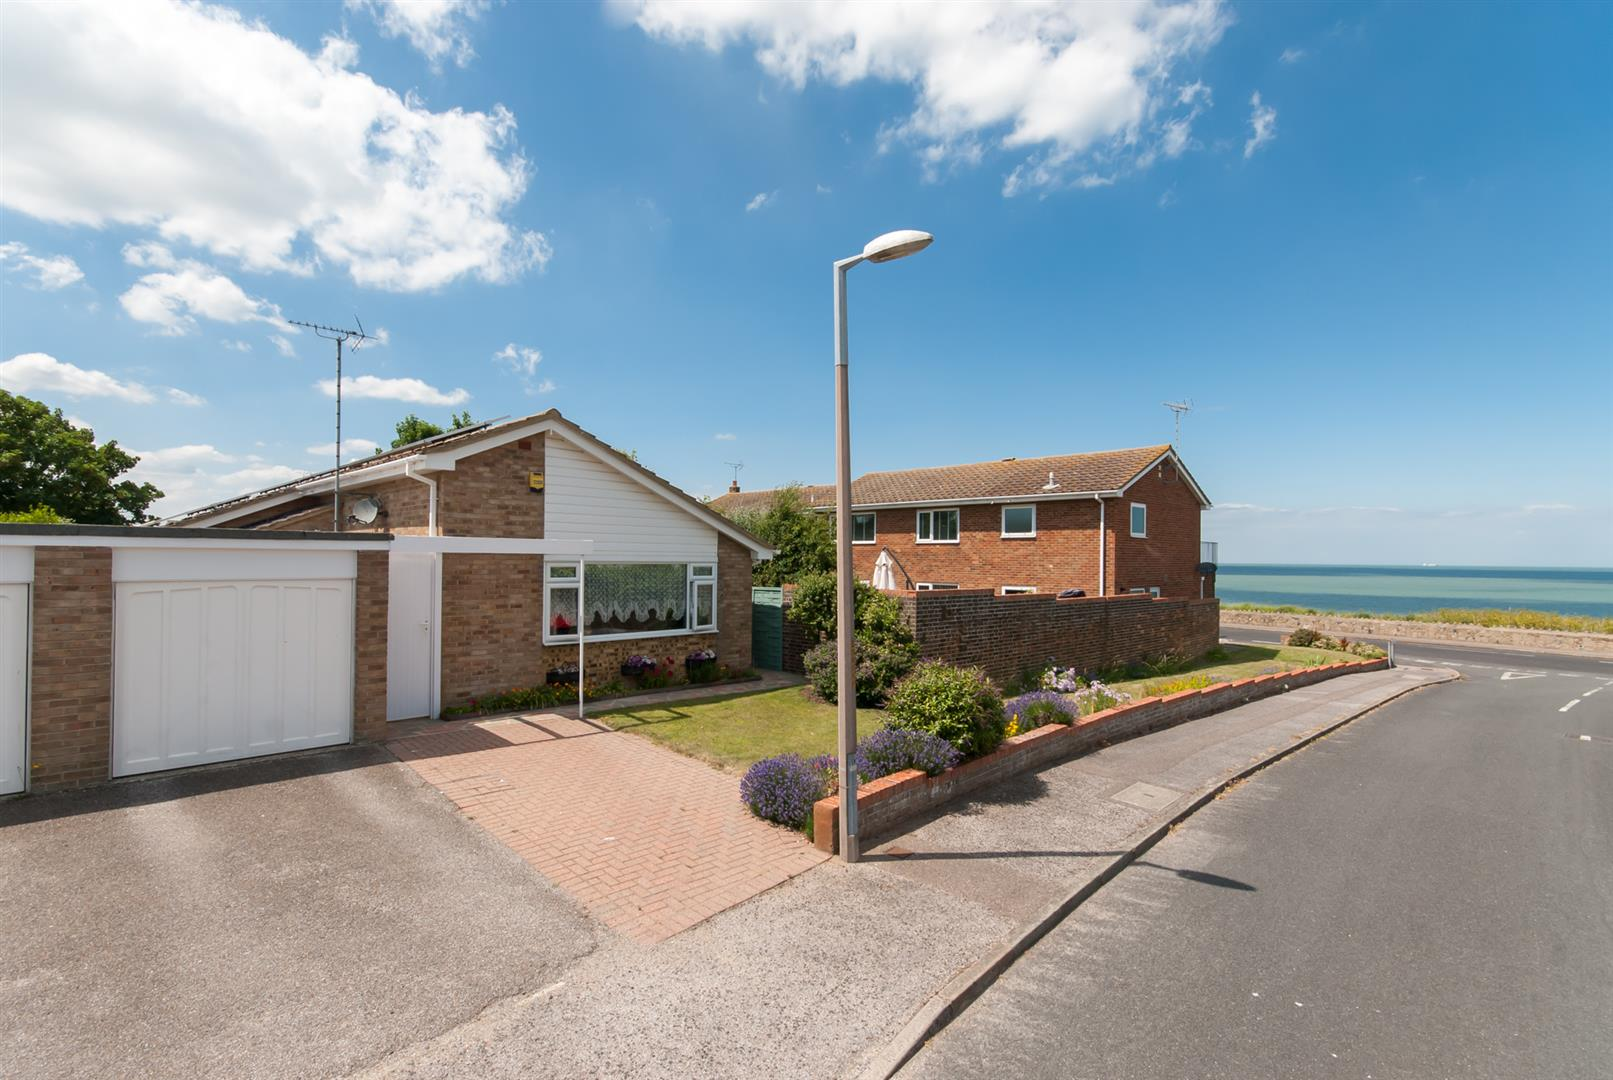 3 Bedrooms Property for sale in Cliff Field, Westgate-On-Sea